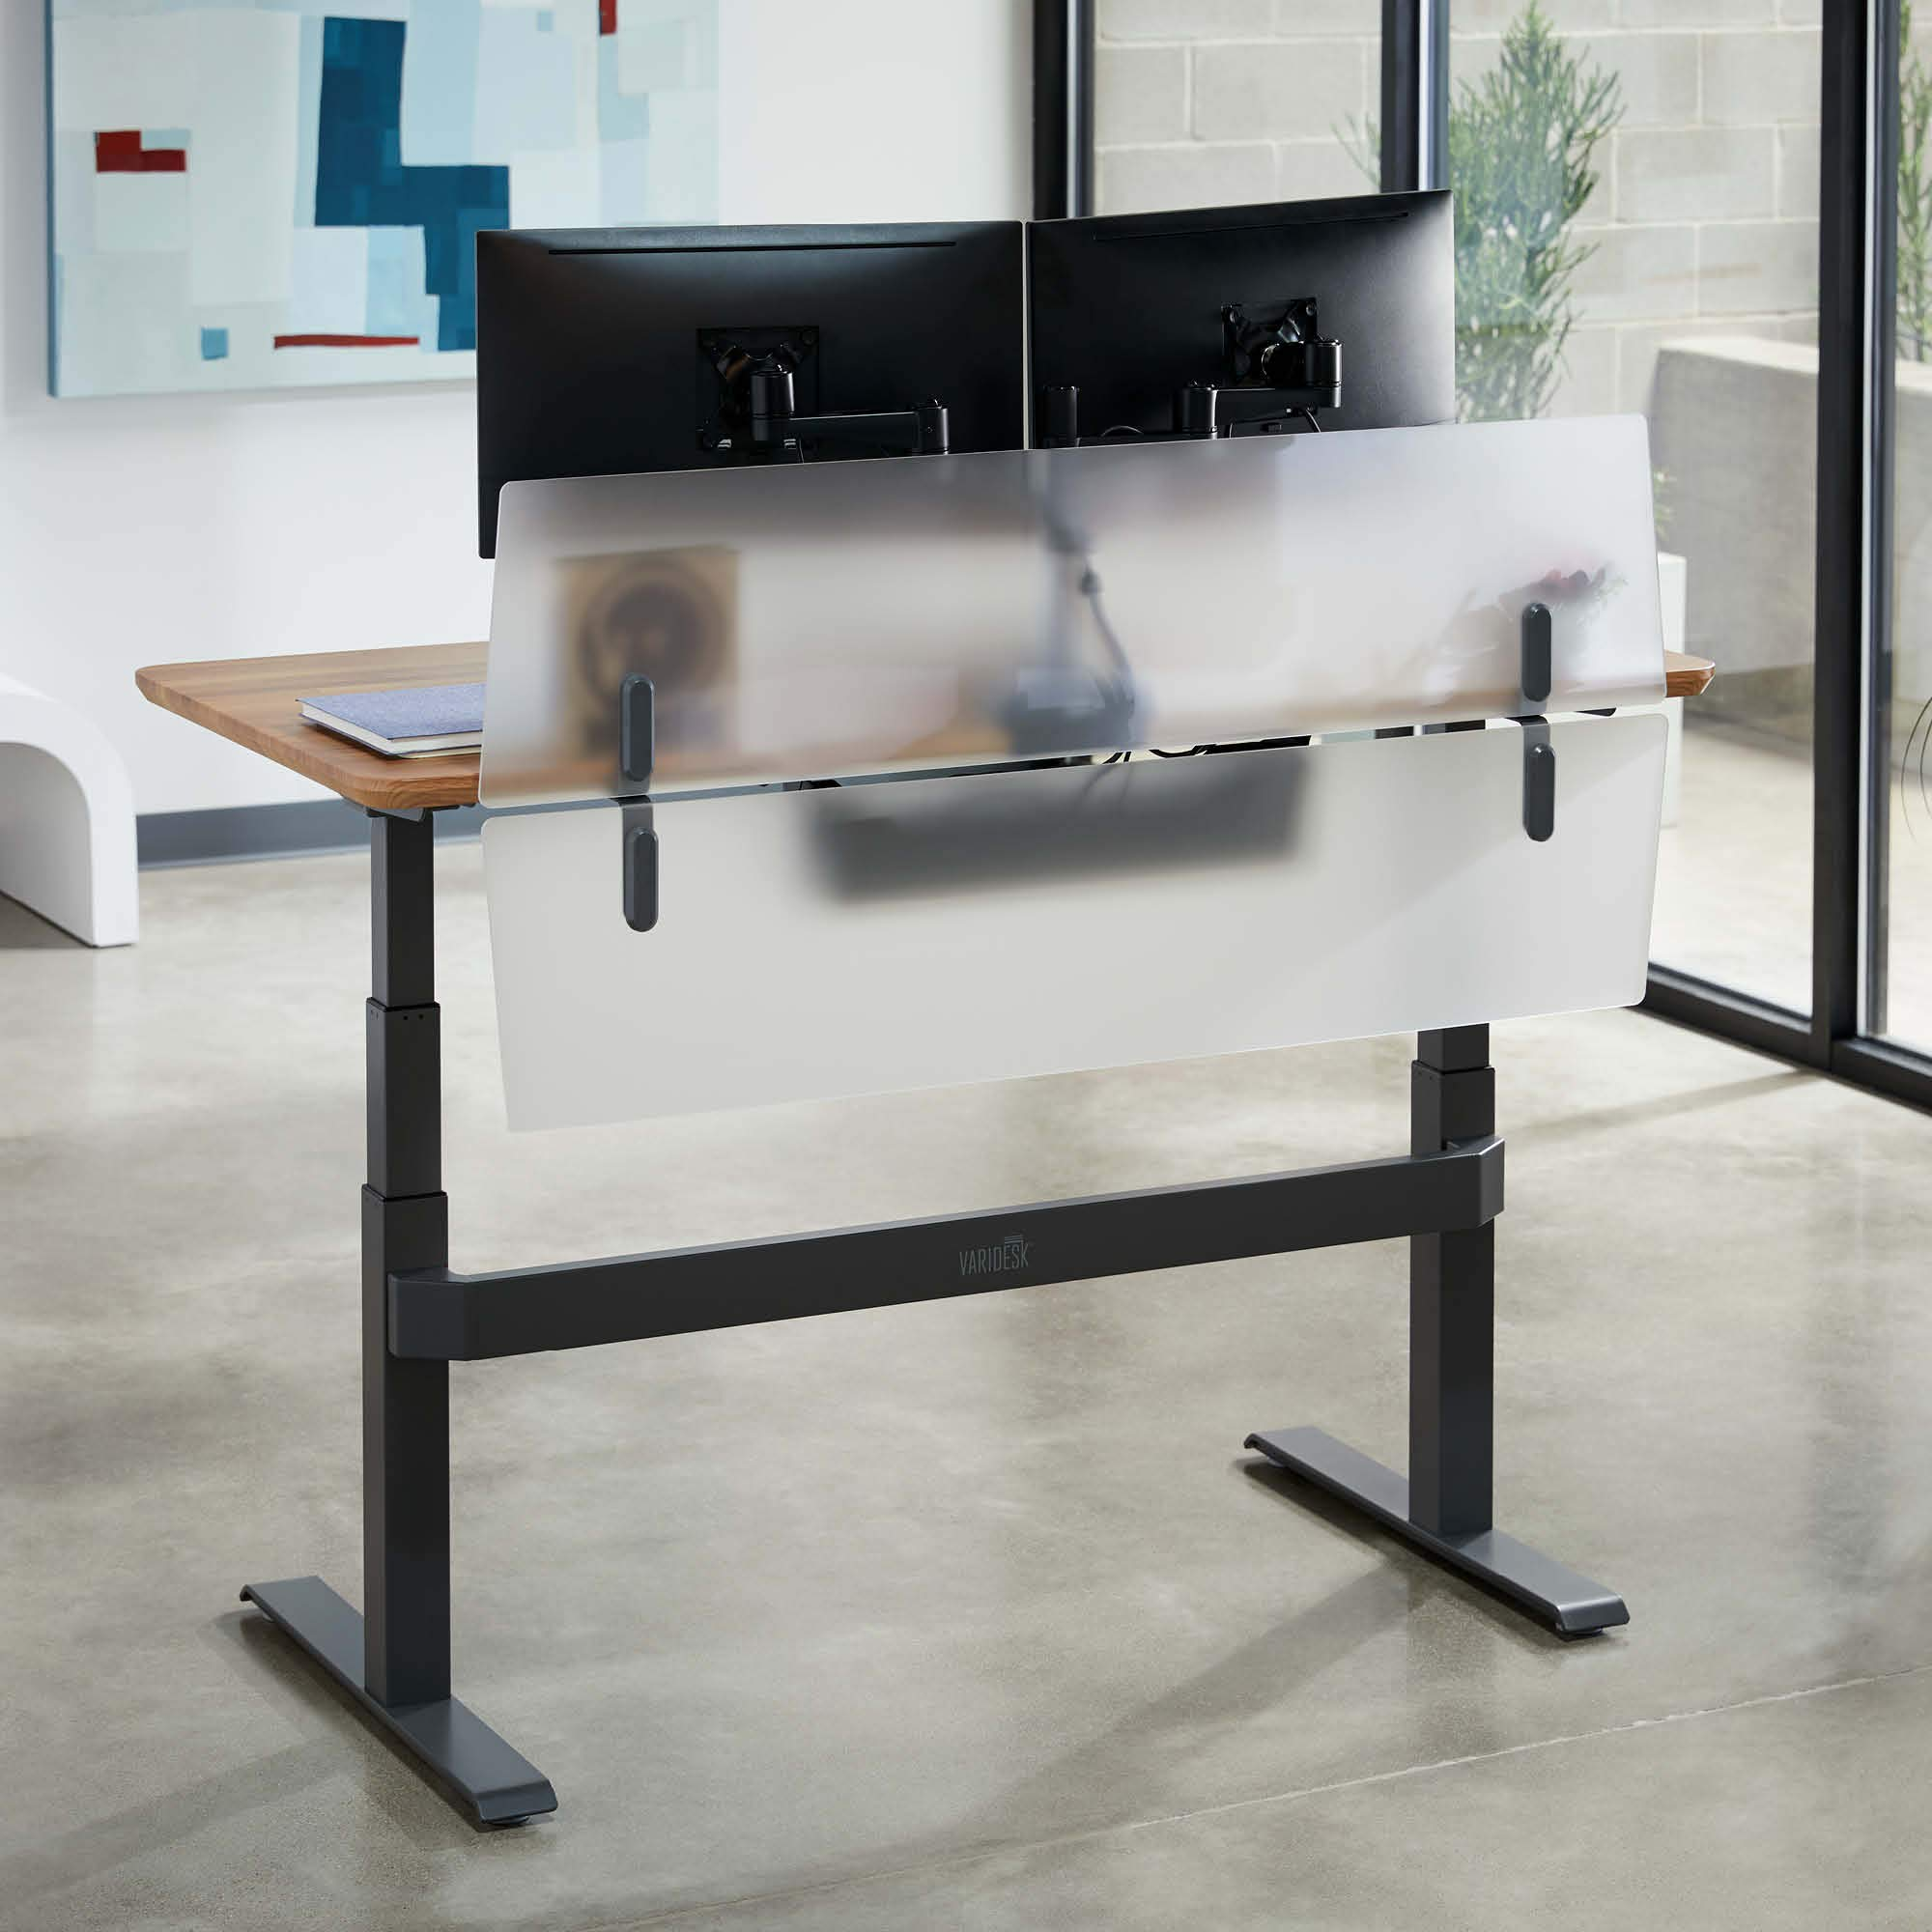 VARIDESK - ProDesk Electric Privacy and Modesty Panel 60 - Office Partition by VARIDESK (Image #2)